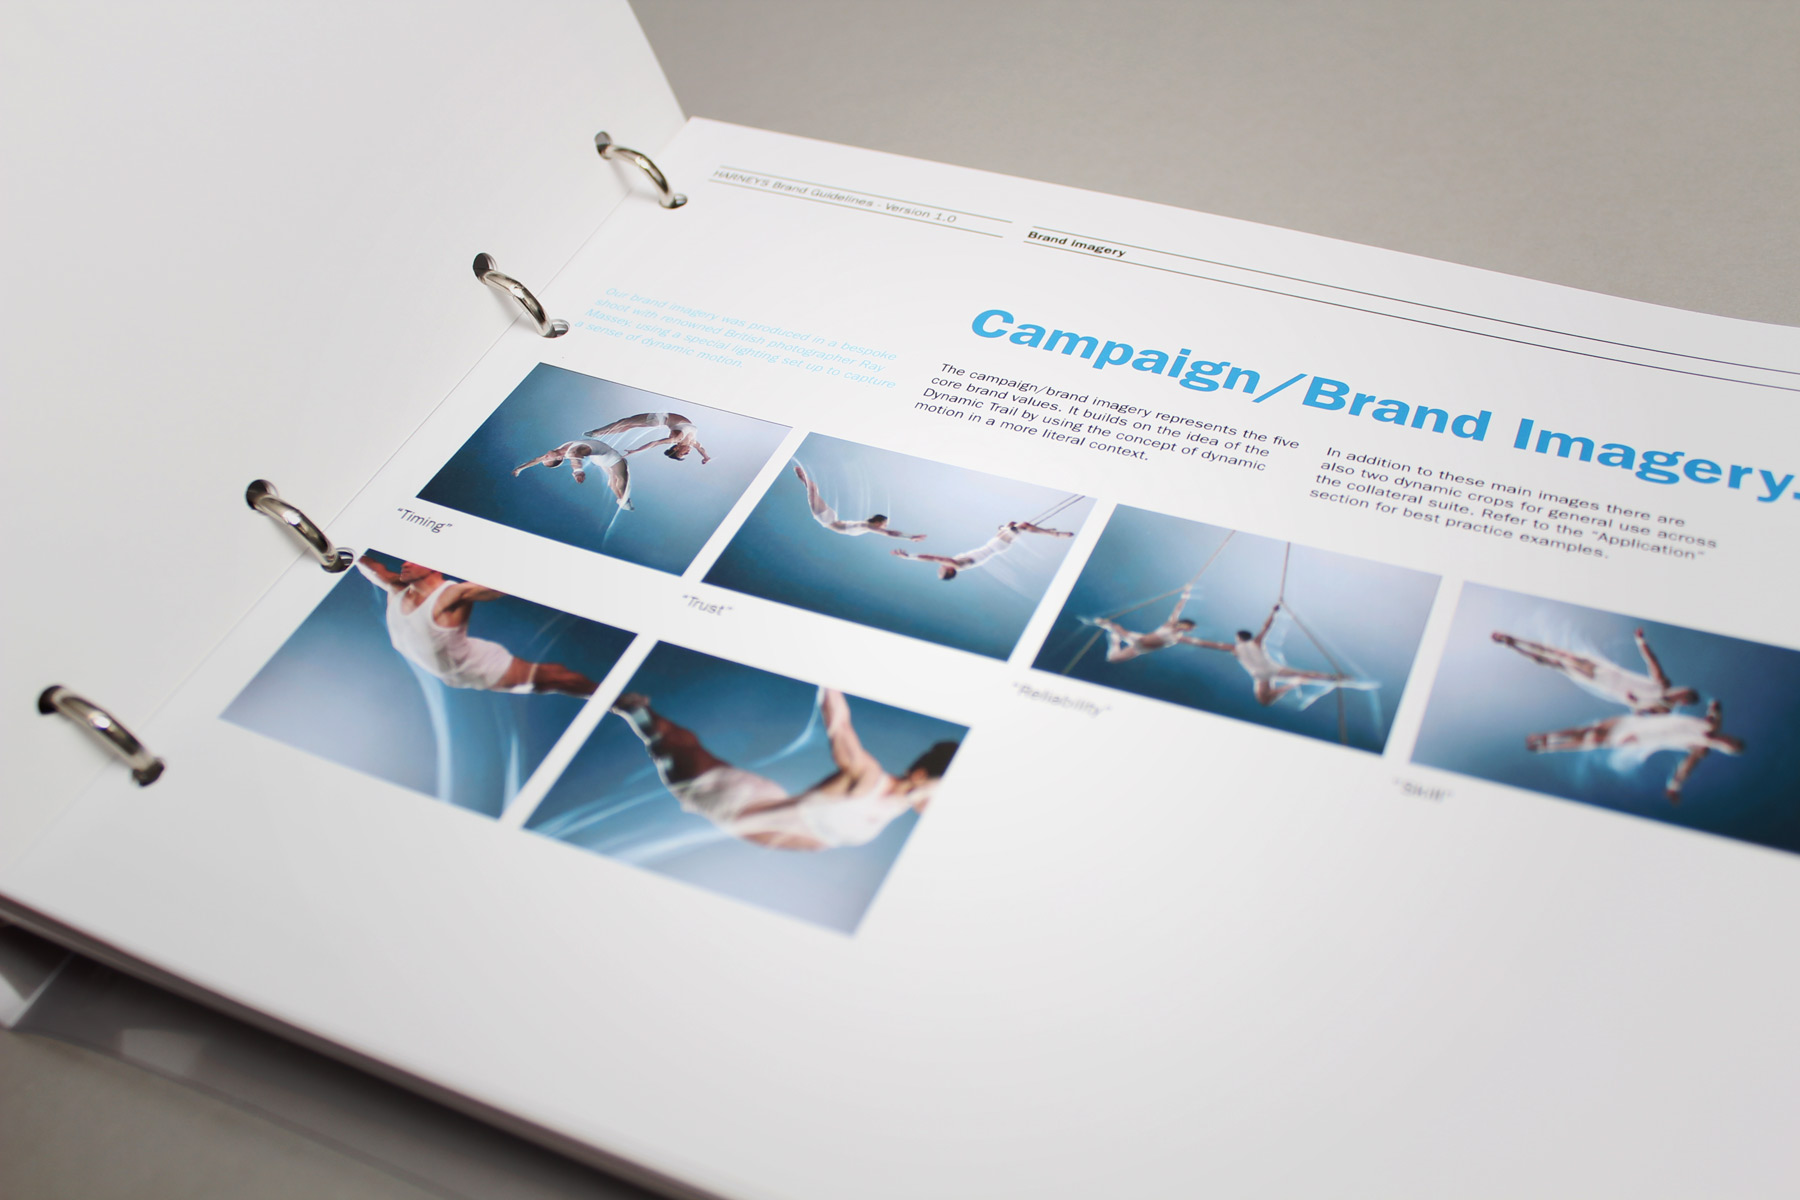 The suite of brand images captured the business values - Timing, Trust, Reliability, Skill.